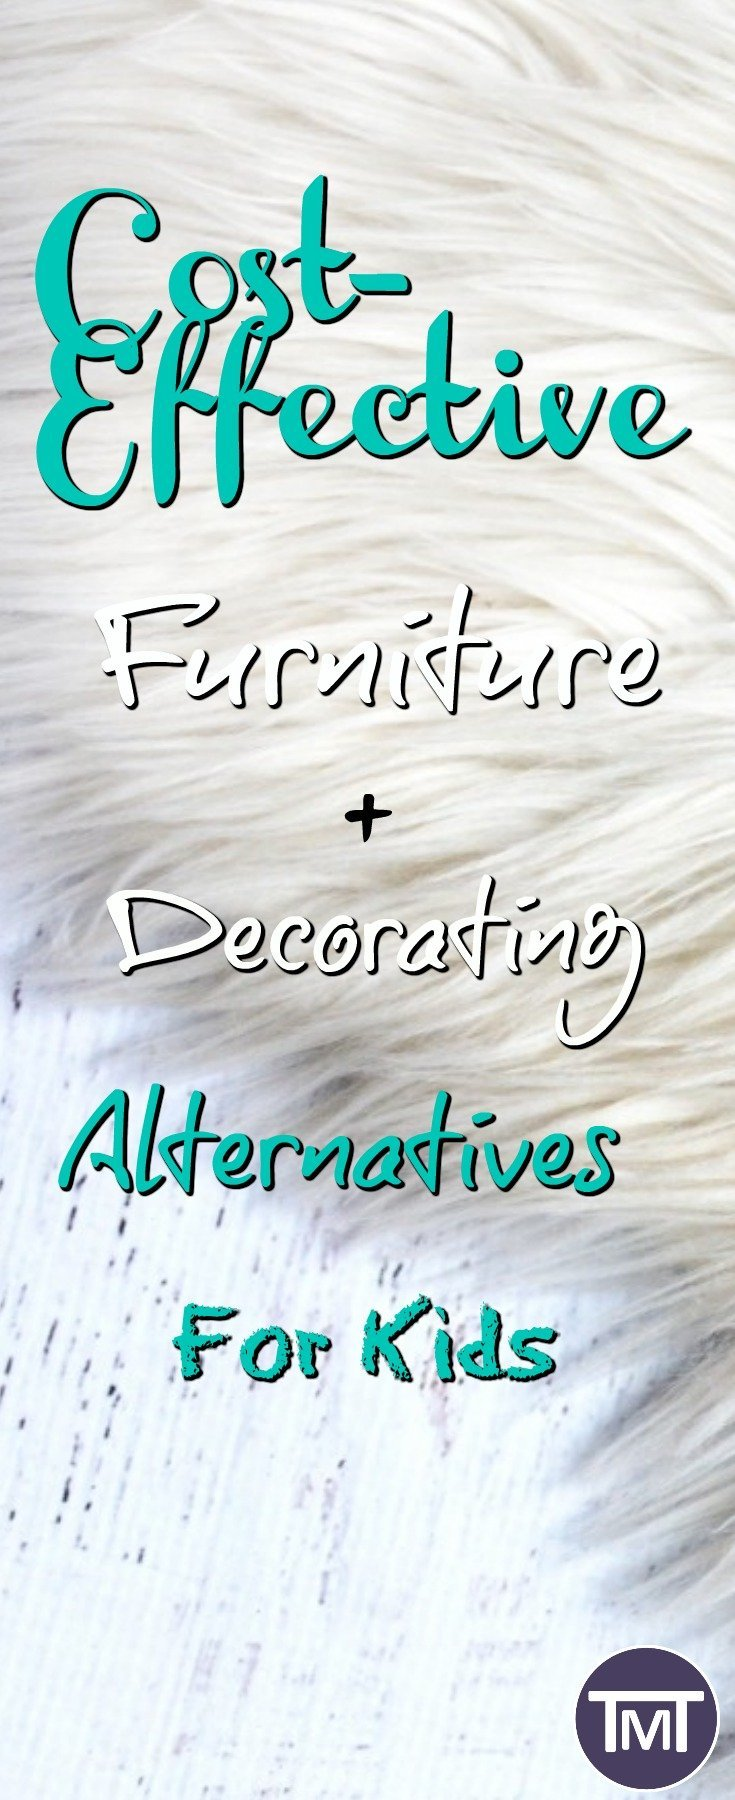 As we have moved, cost-effective furniture alternatives are definitely a friend of the budget! This guest post gives you tips and advice to save money